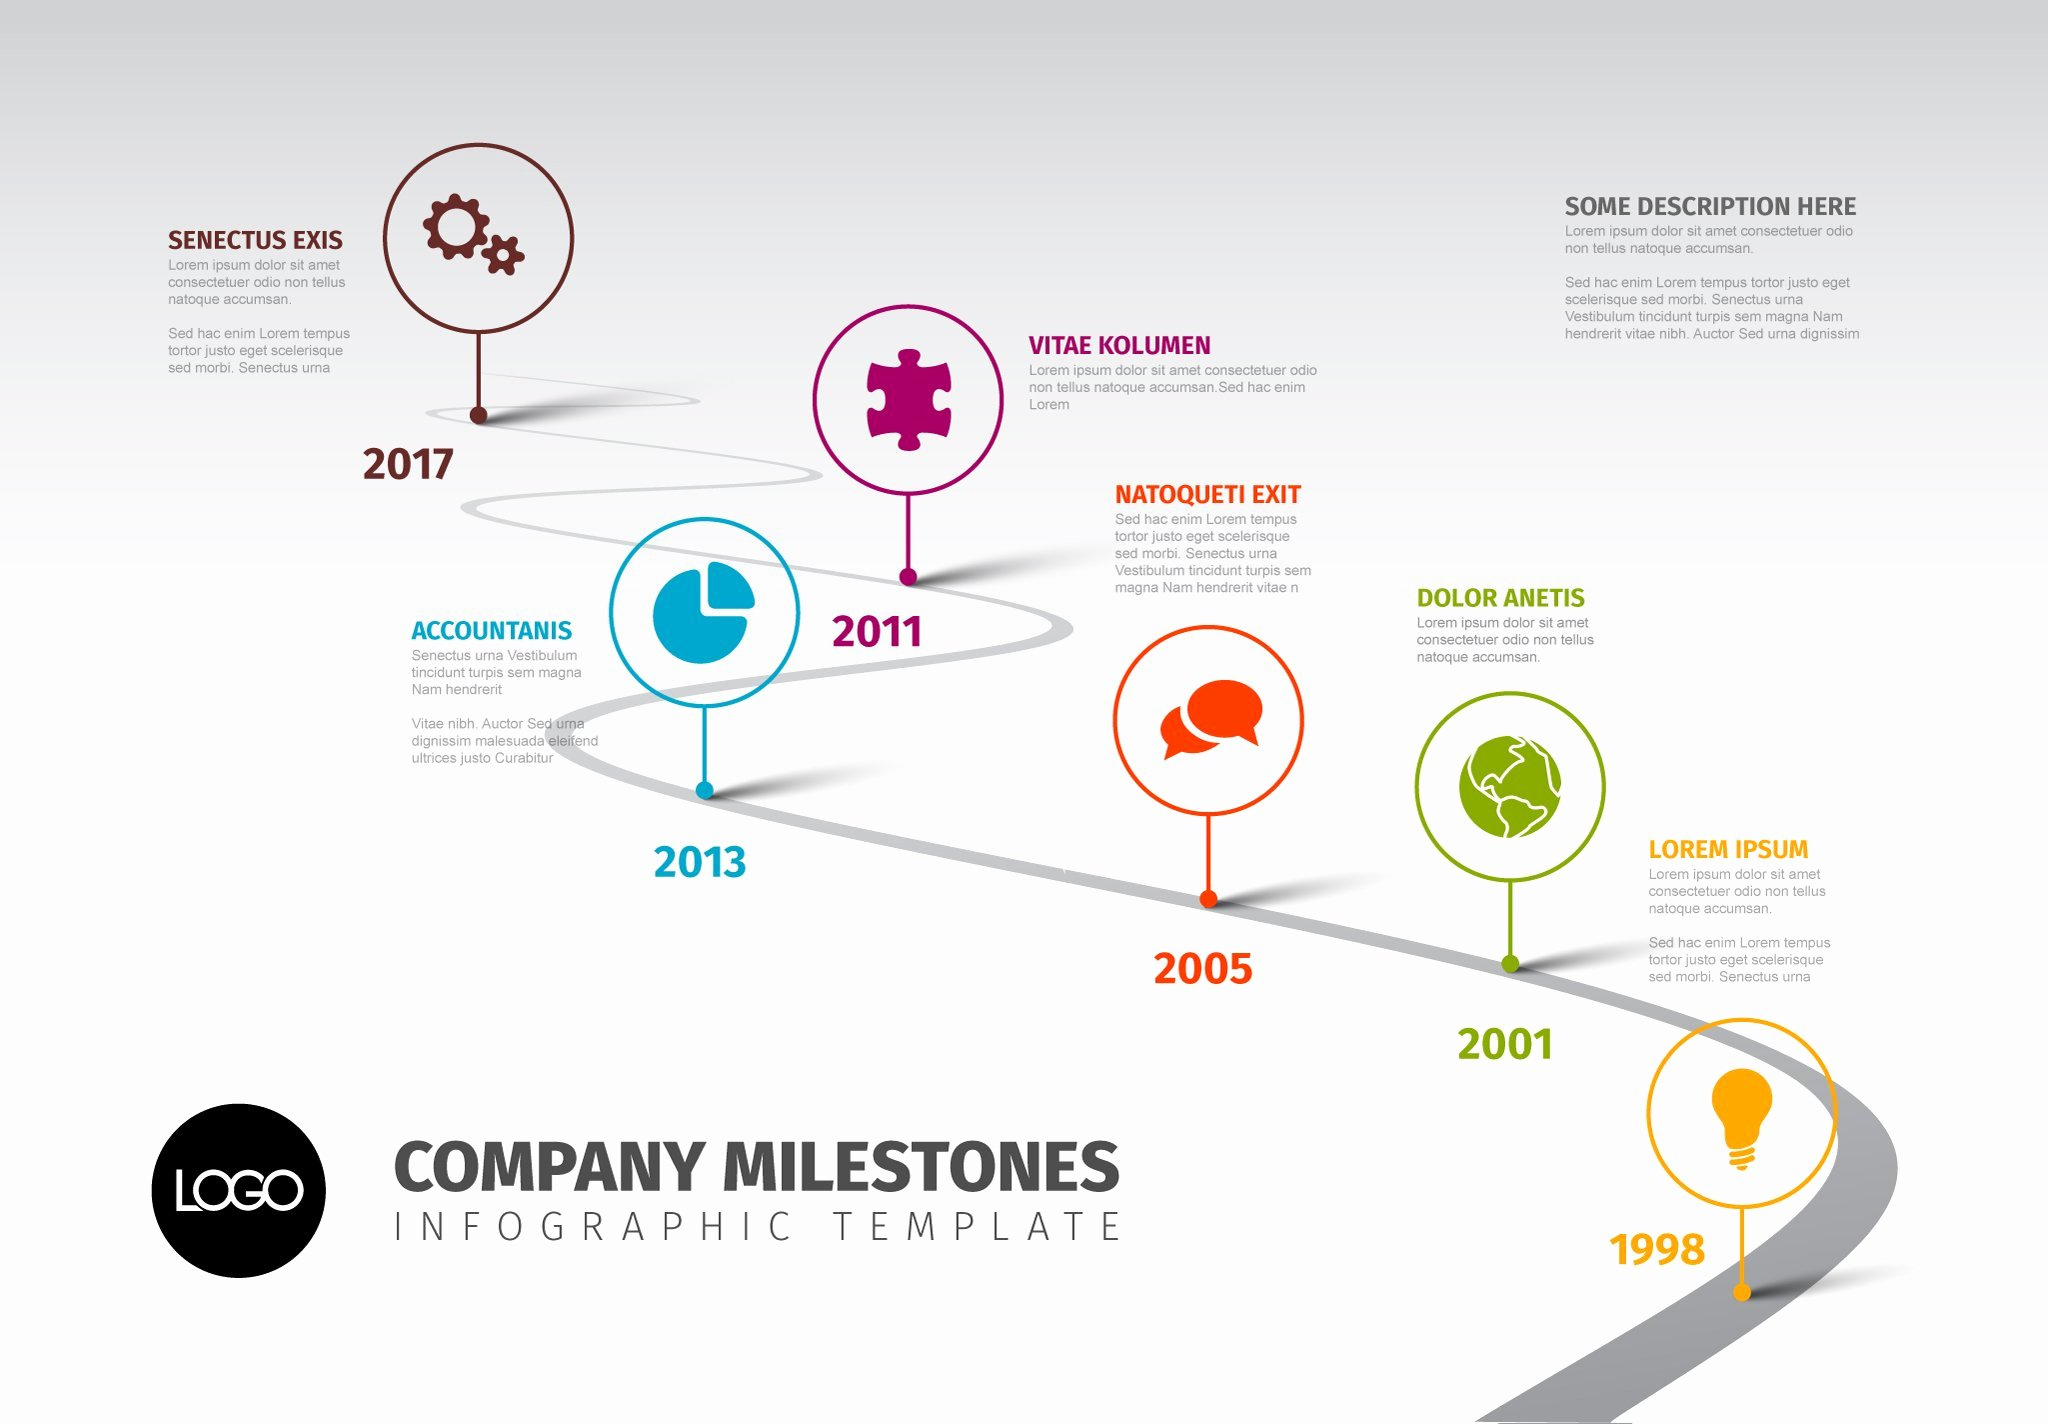 Website Development Timeline Template Inspirational Timeline Template with Icons Presentation Templates